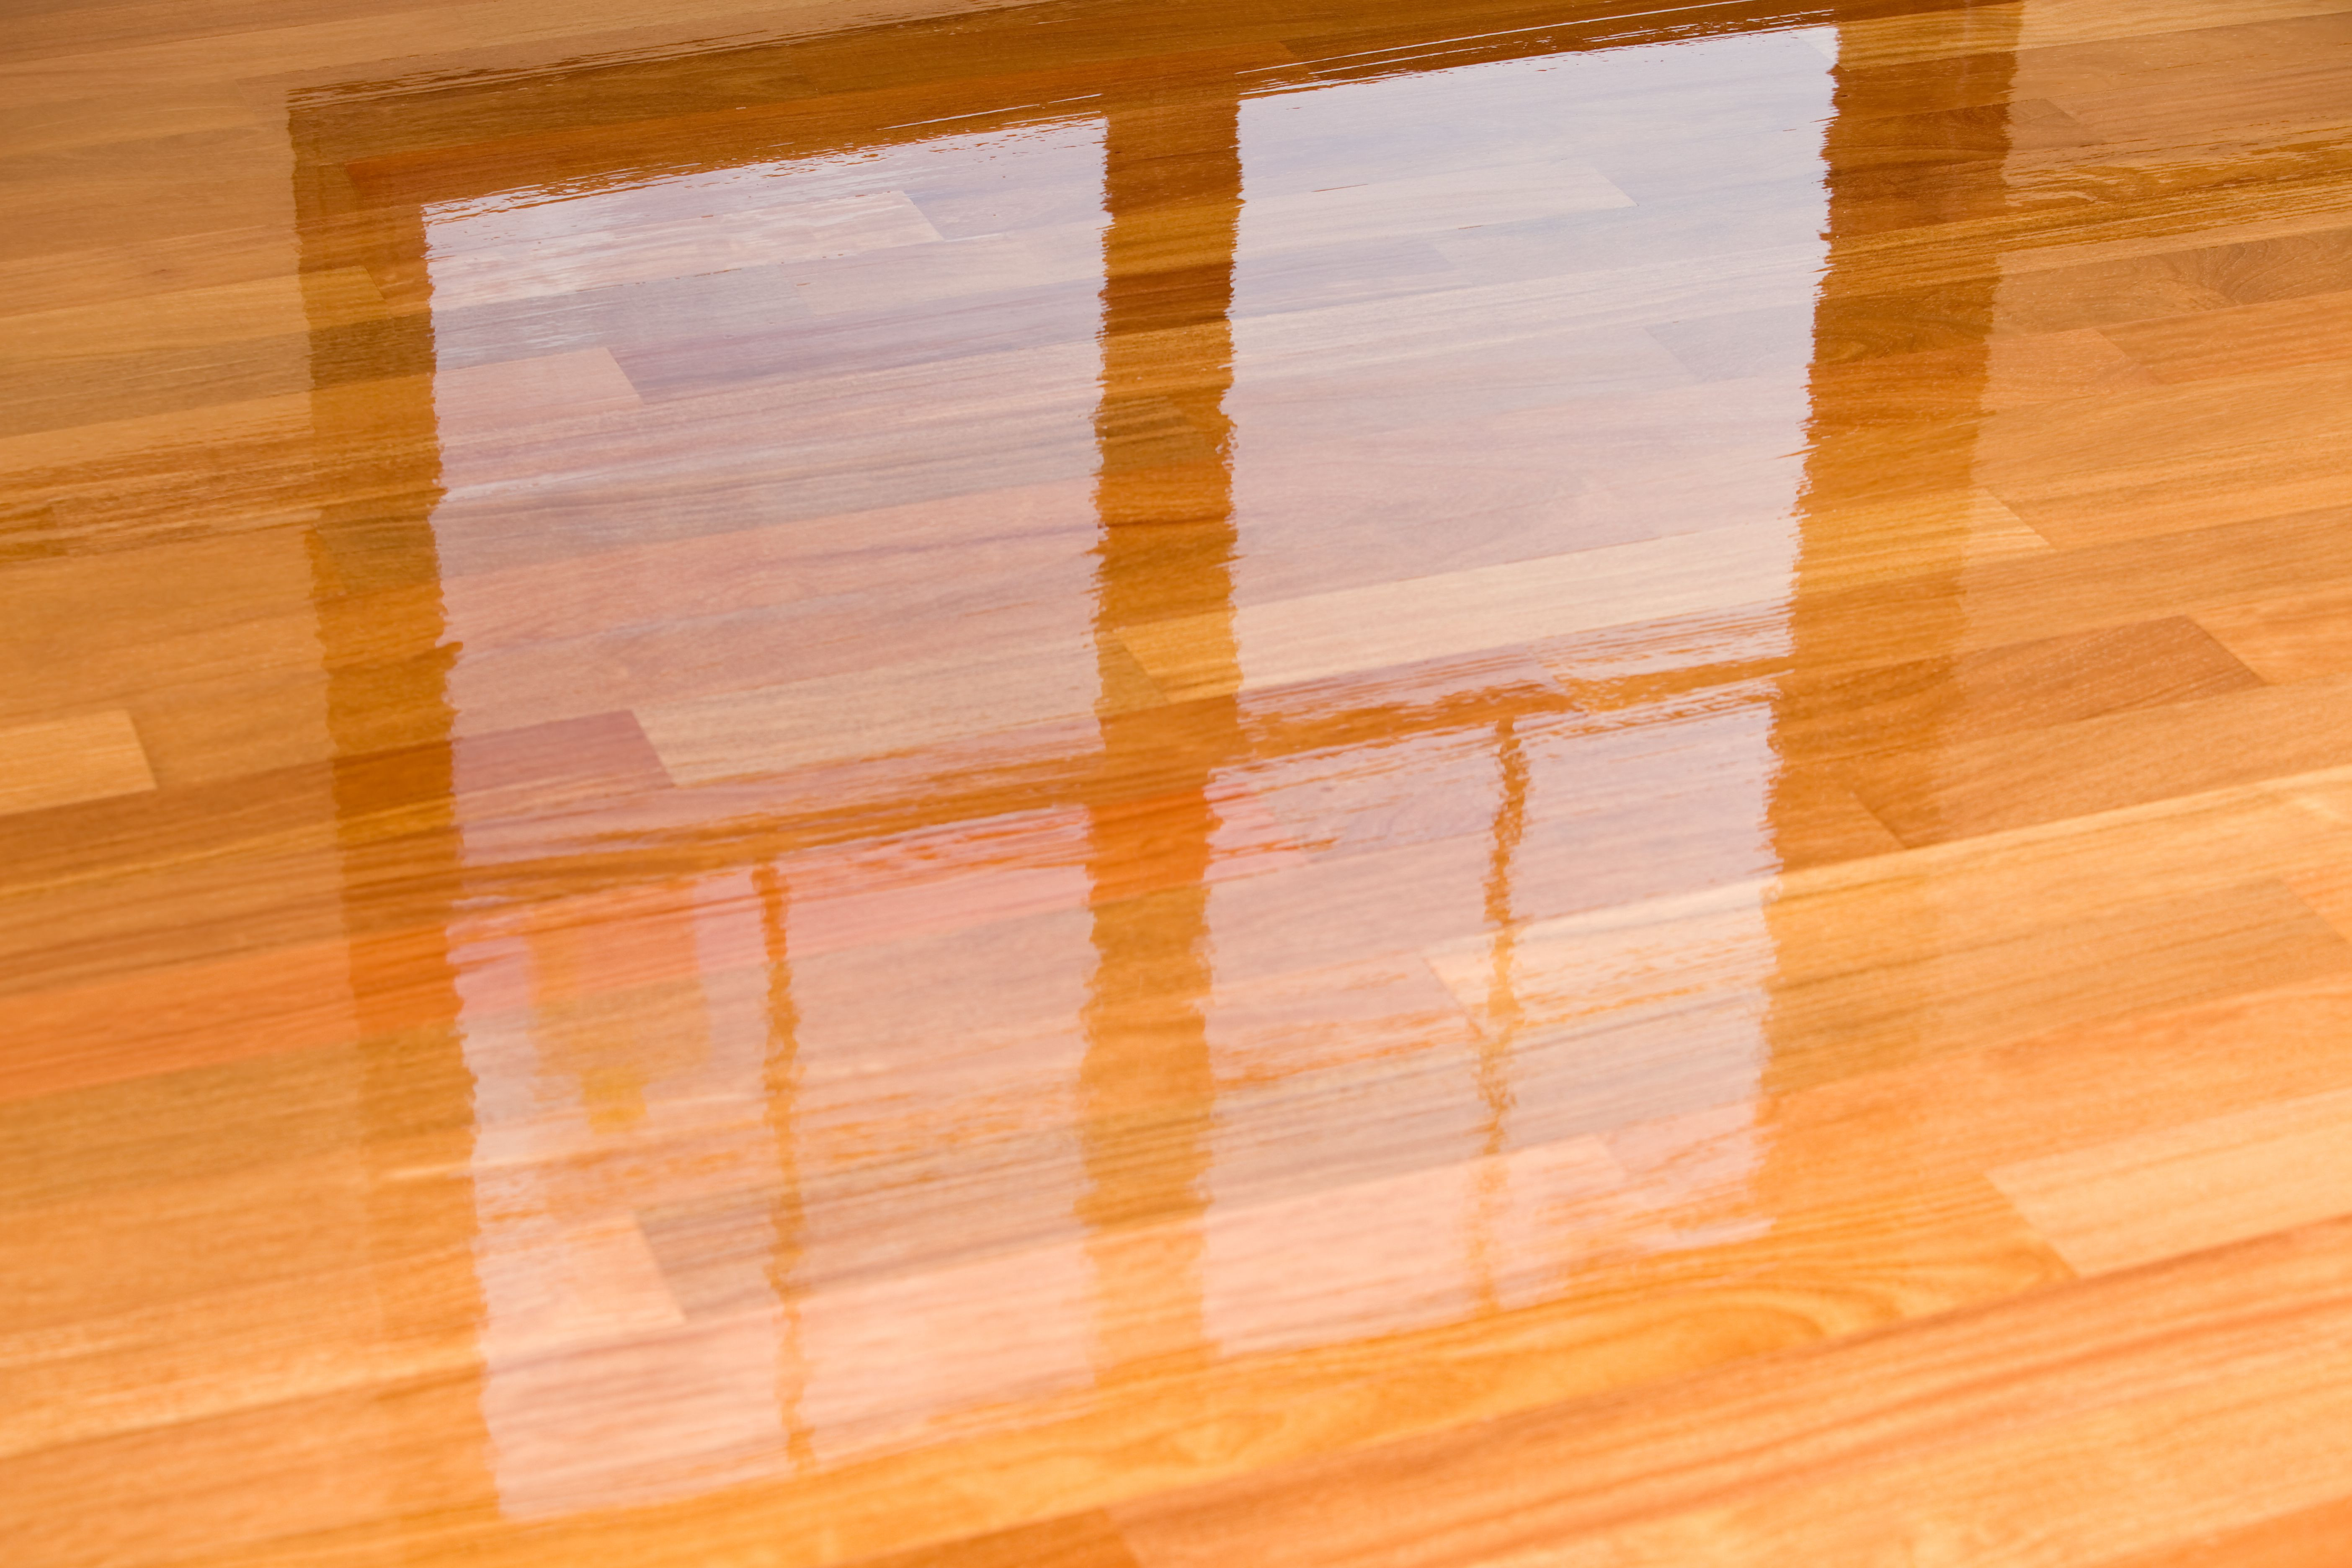 hardwood floor cleaning columbus ohio of bougainville flooring kitchen decor items luxury kitchen kitchen with regard to bougainville flooring the right cleaners for your solid hardwood flooring bougainville flooring guide to laminate flooring water and damage repair